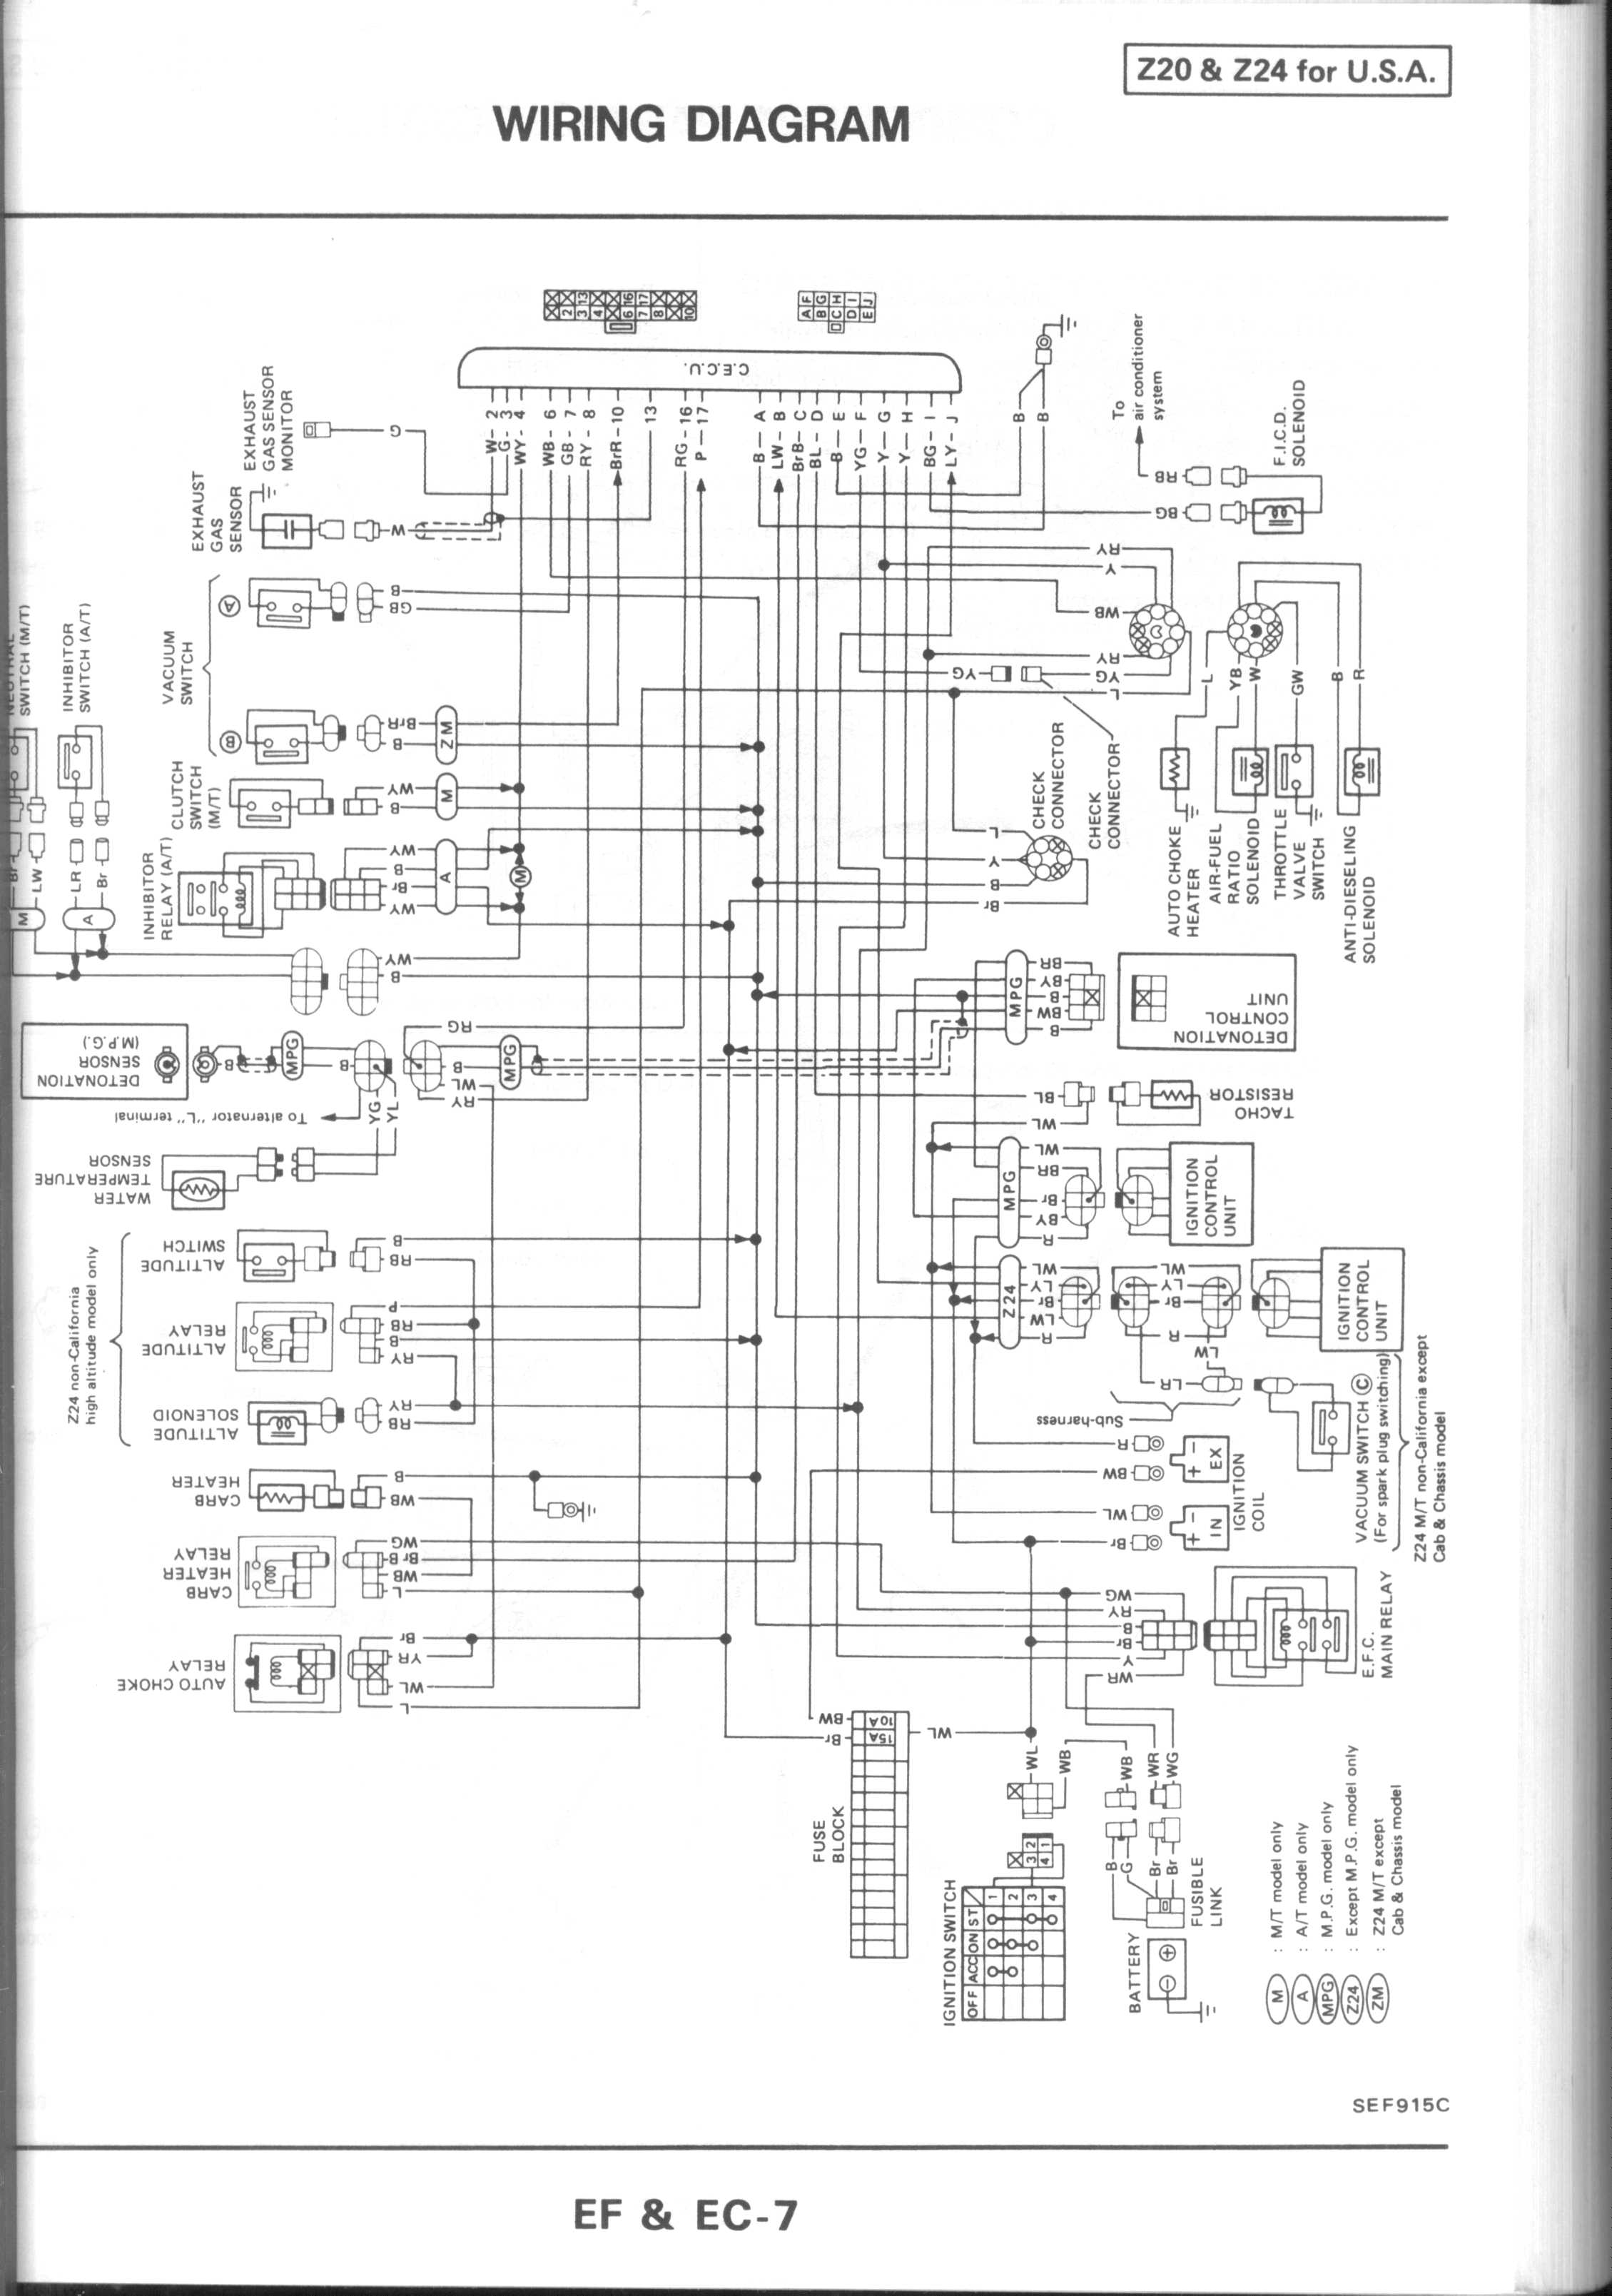 720_z24_ecu_wiring?resize=665%2C947 diagrams 578680 nissan frontier radio wiring diagram 2015 wiring diagram for nissan navara d40 at gsmx.co